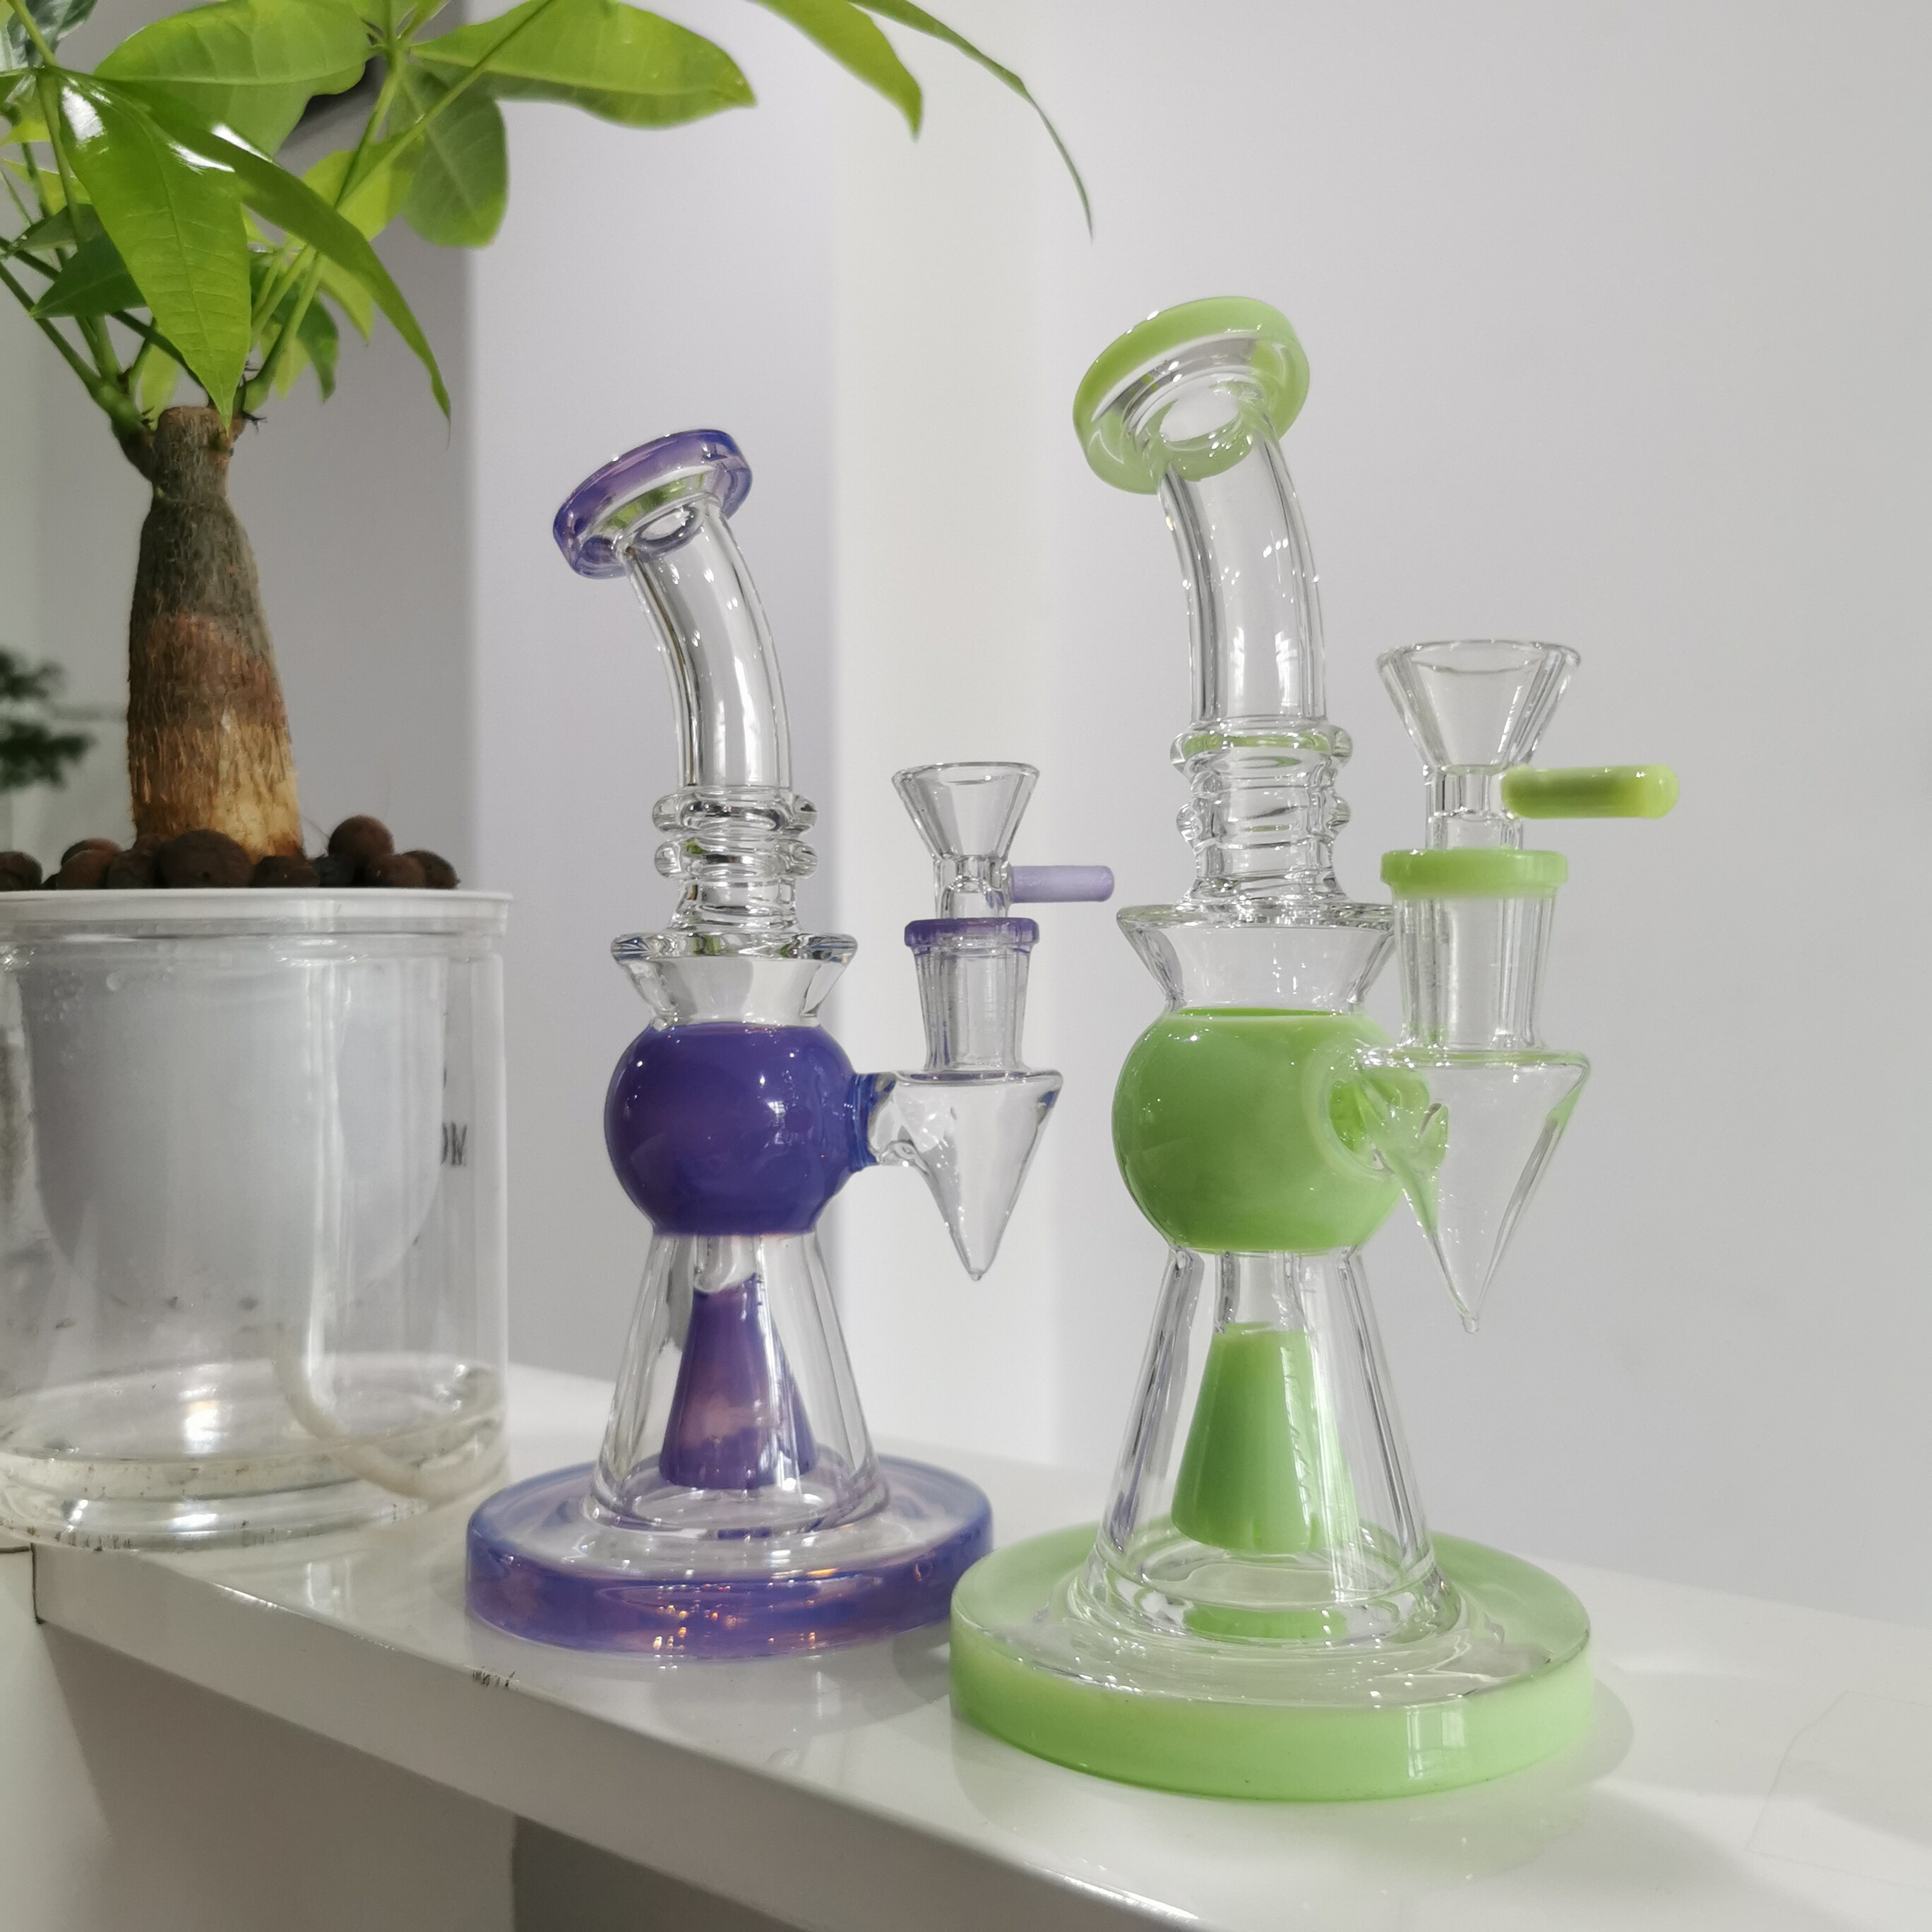 Showerhead Perc Water Pipes Pyramid Design Oil Dab Rigs 2021 Newest Heady Glass Bongs With Bowl